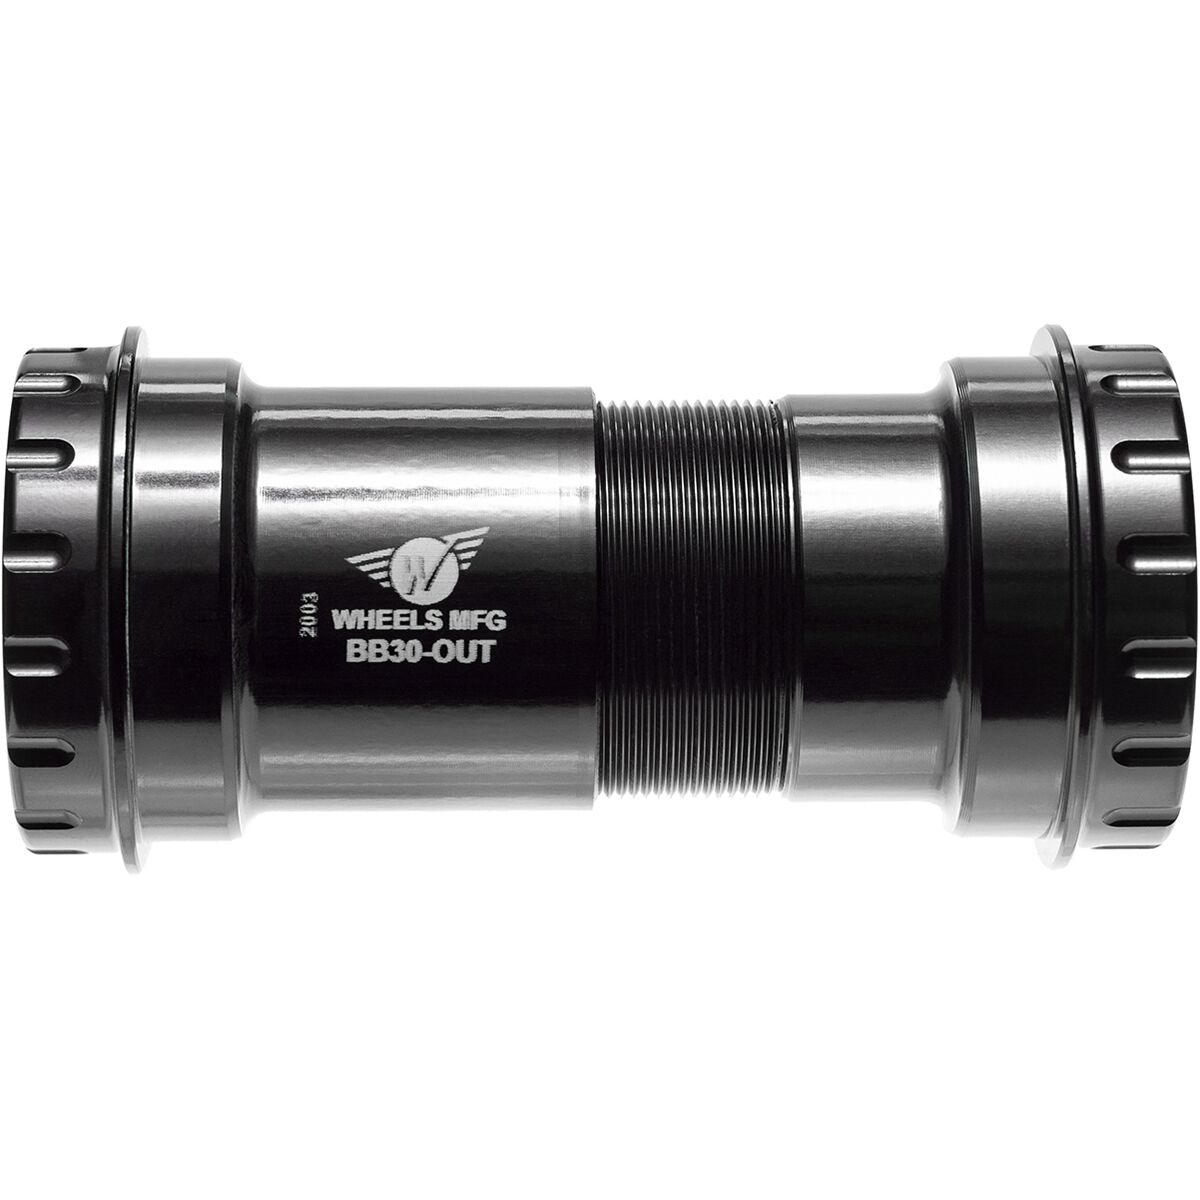 Wheels Mfg BB30 to Shimano Bottom Bracket with ABEC 3 Bearings Black One Size